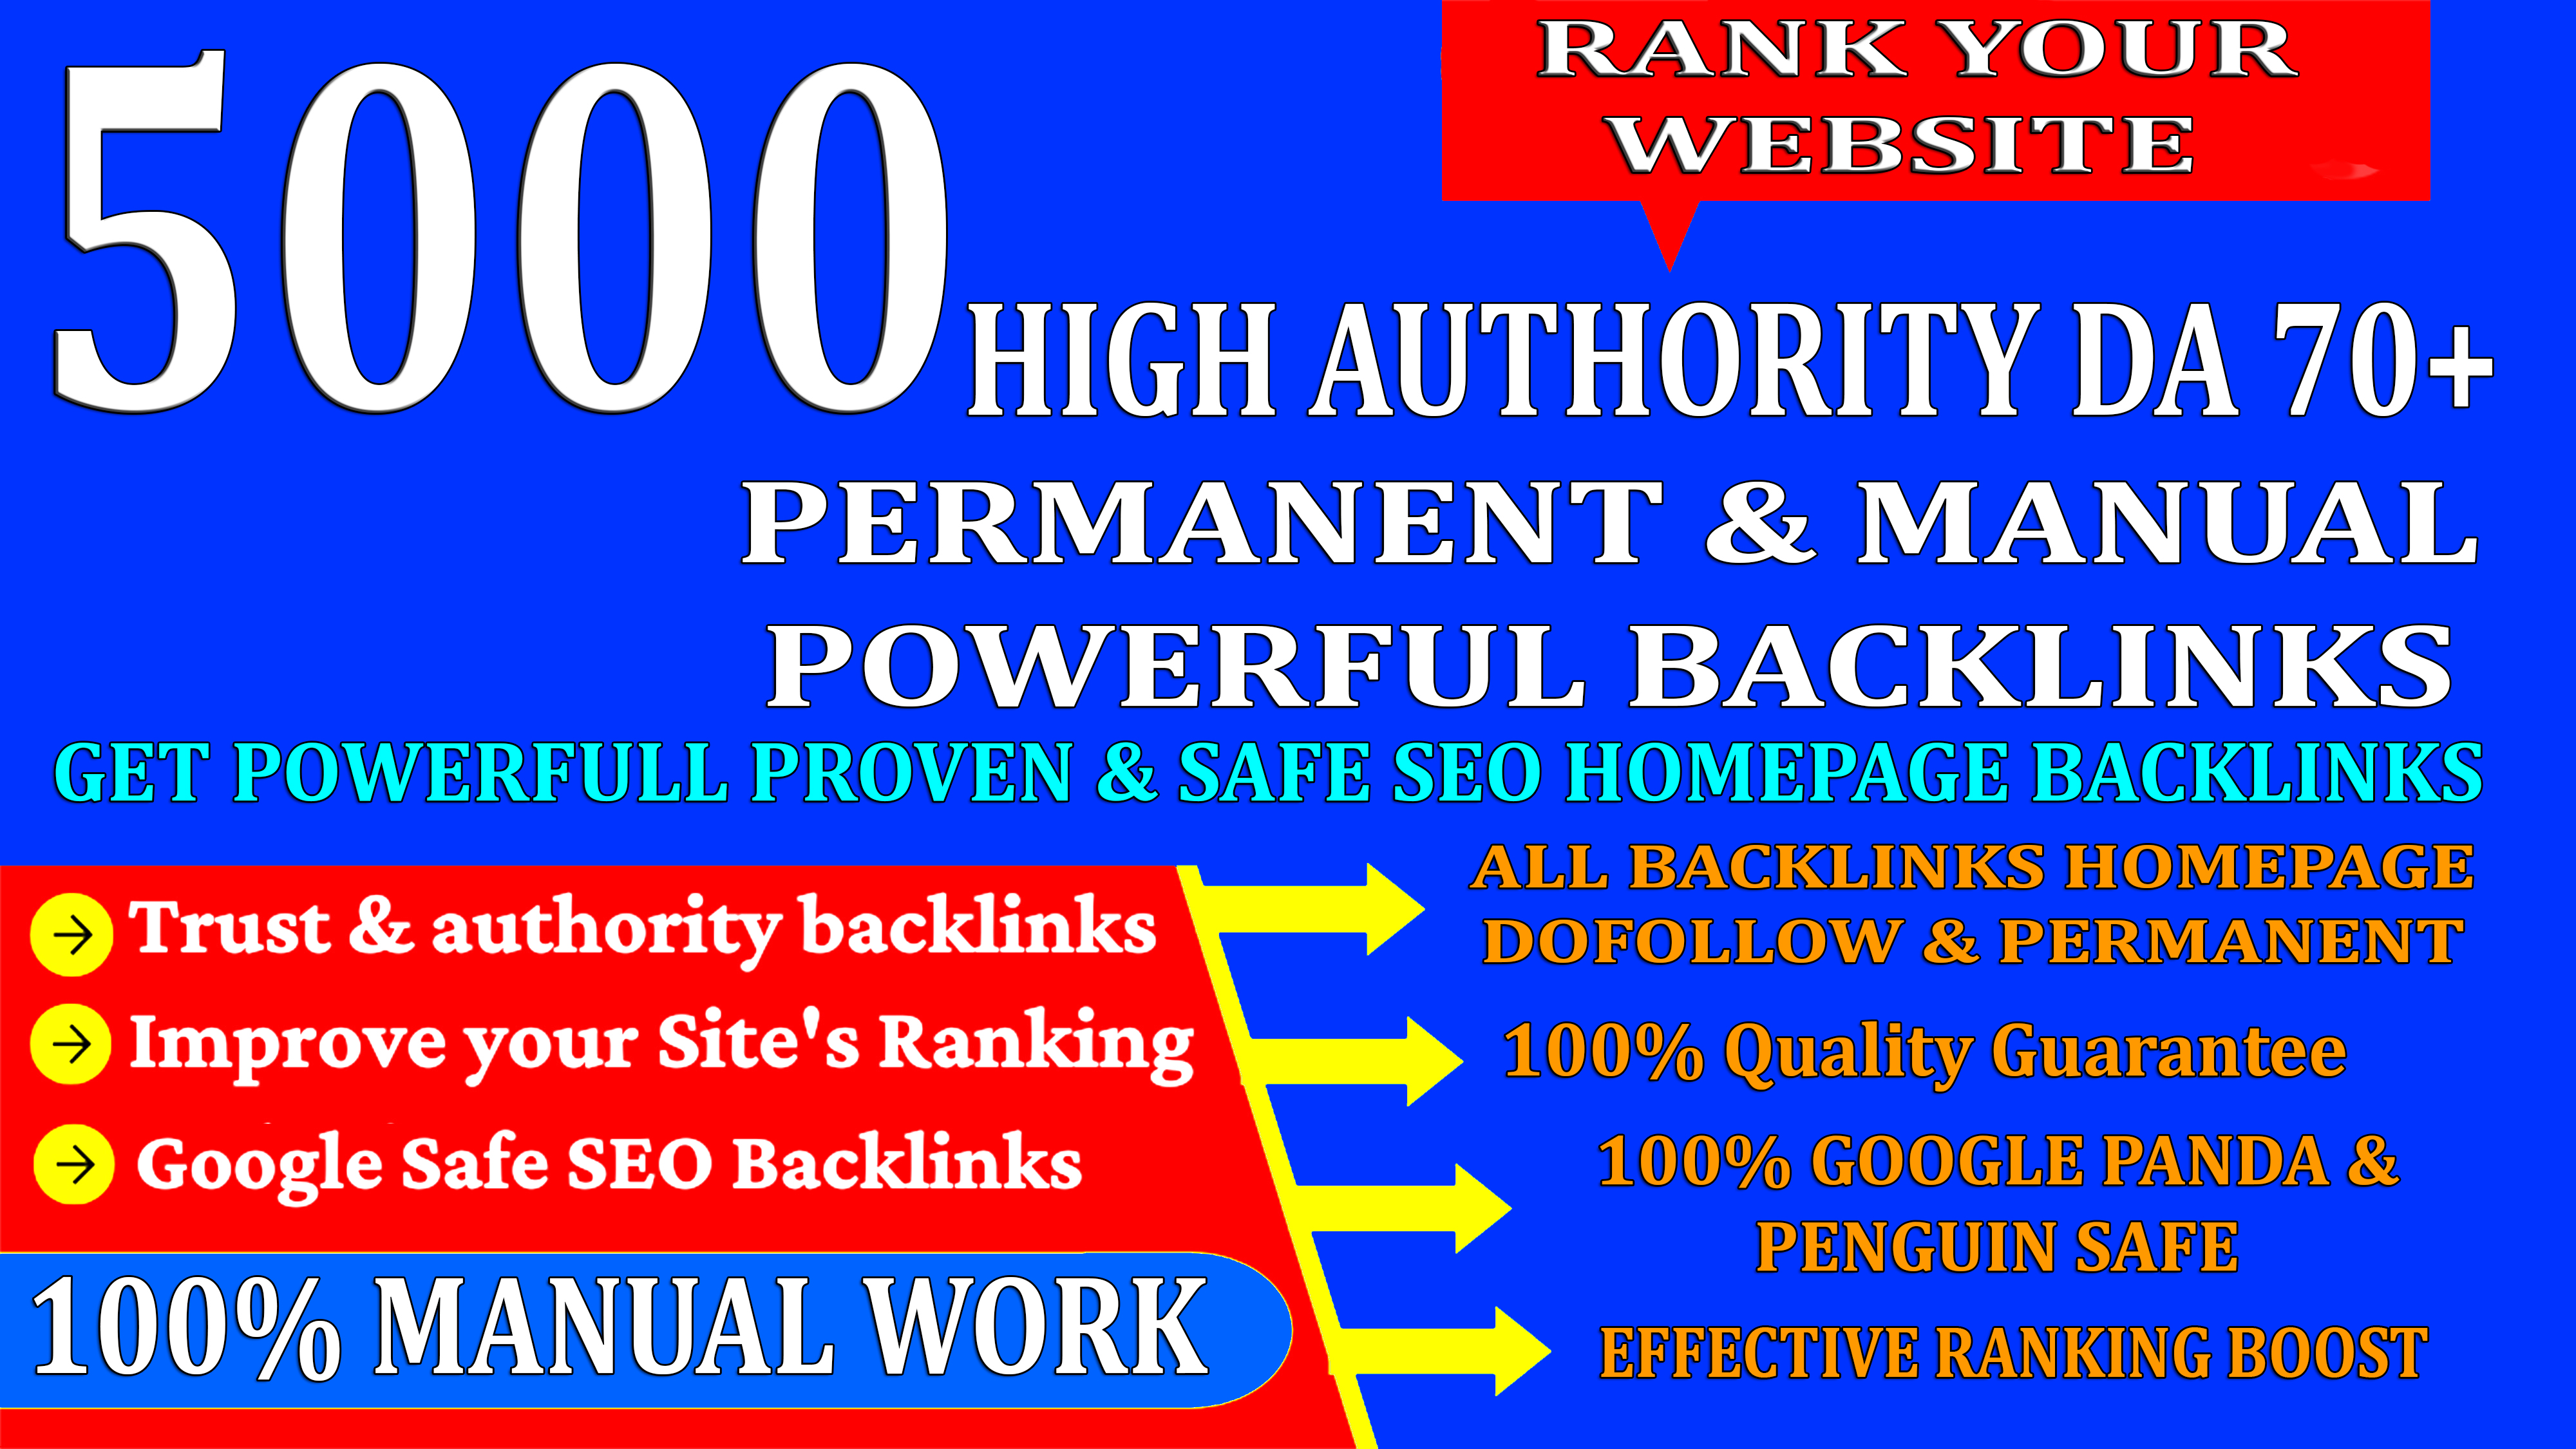 5000 High Authority Permanent Web2.0 Homepage Backlinks With High DA/PA On Ranking your Website